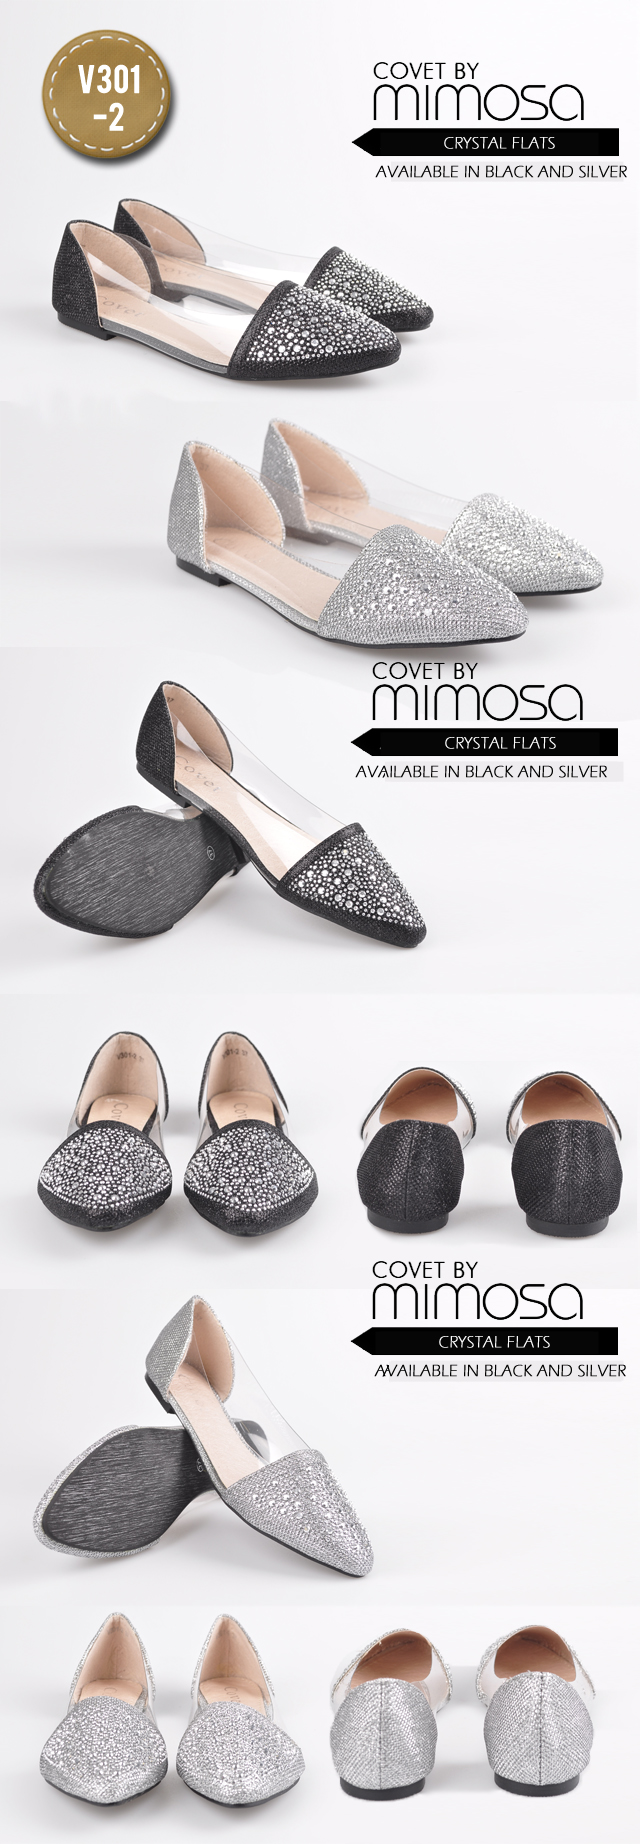 Buy Covet By Mimosa Flats Collection Heels Wedges Sandals ...